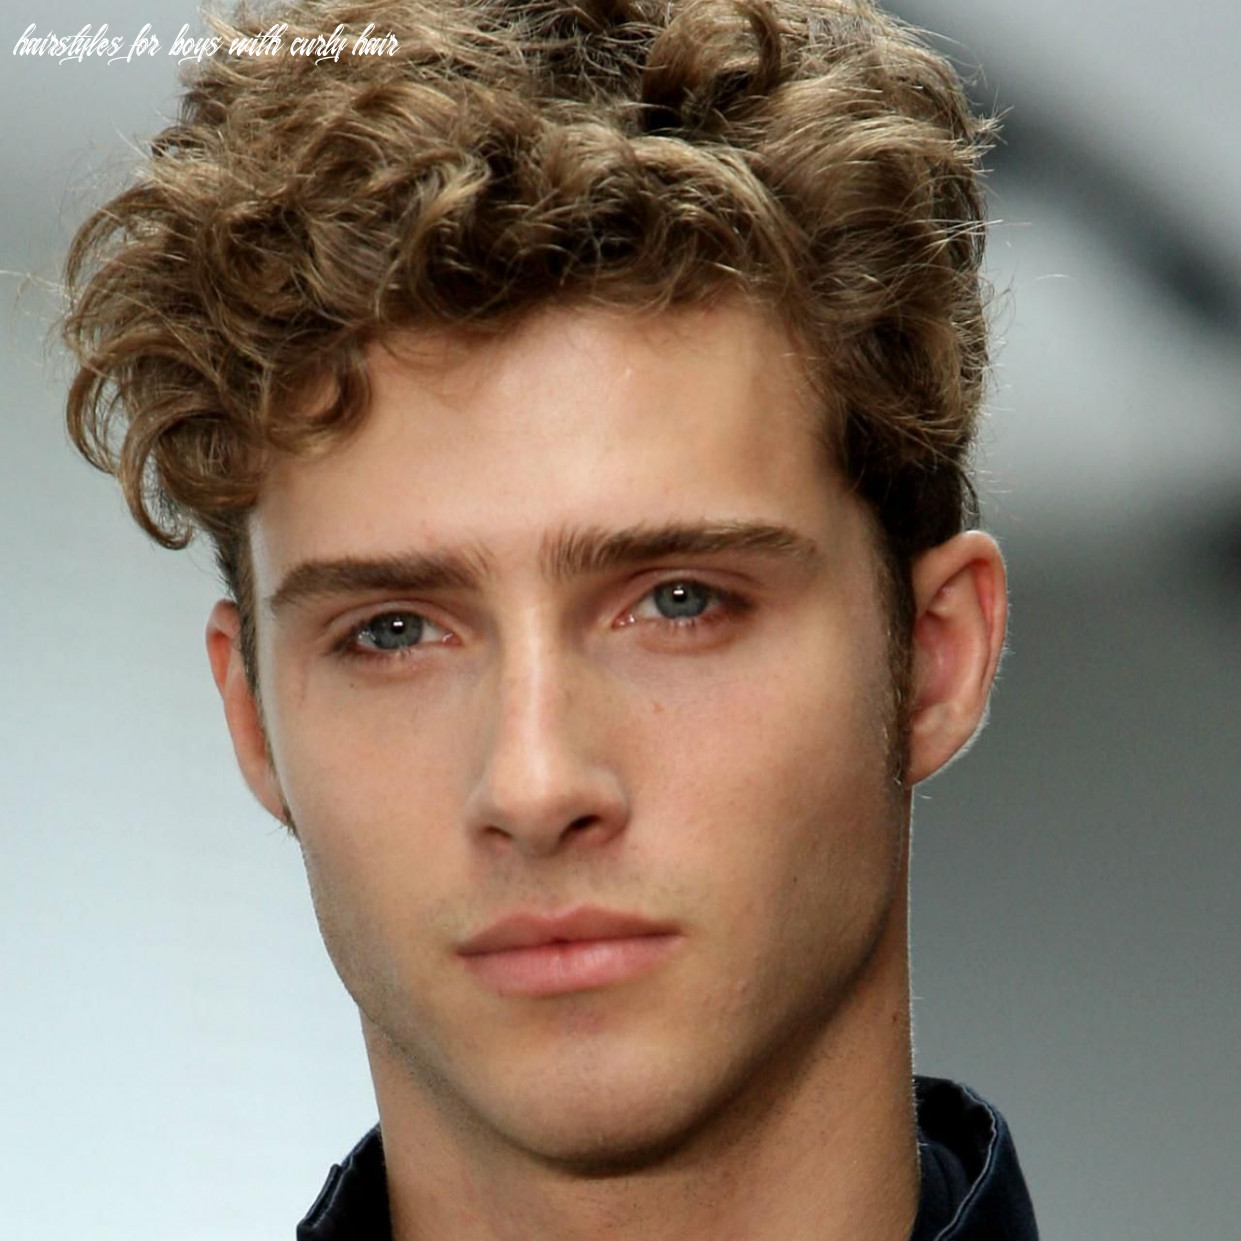 Hairstyles guys with curly hair hairstyles for boys with curly hair